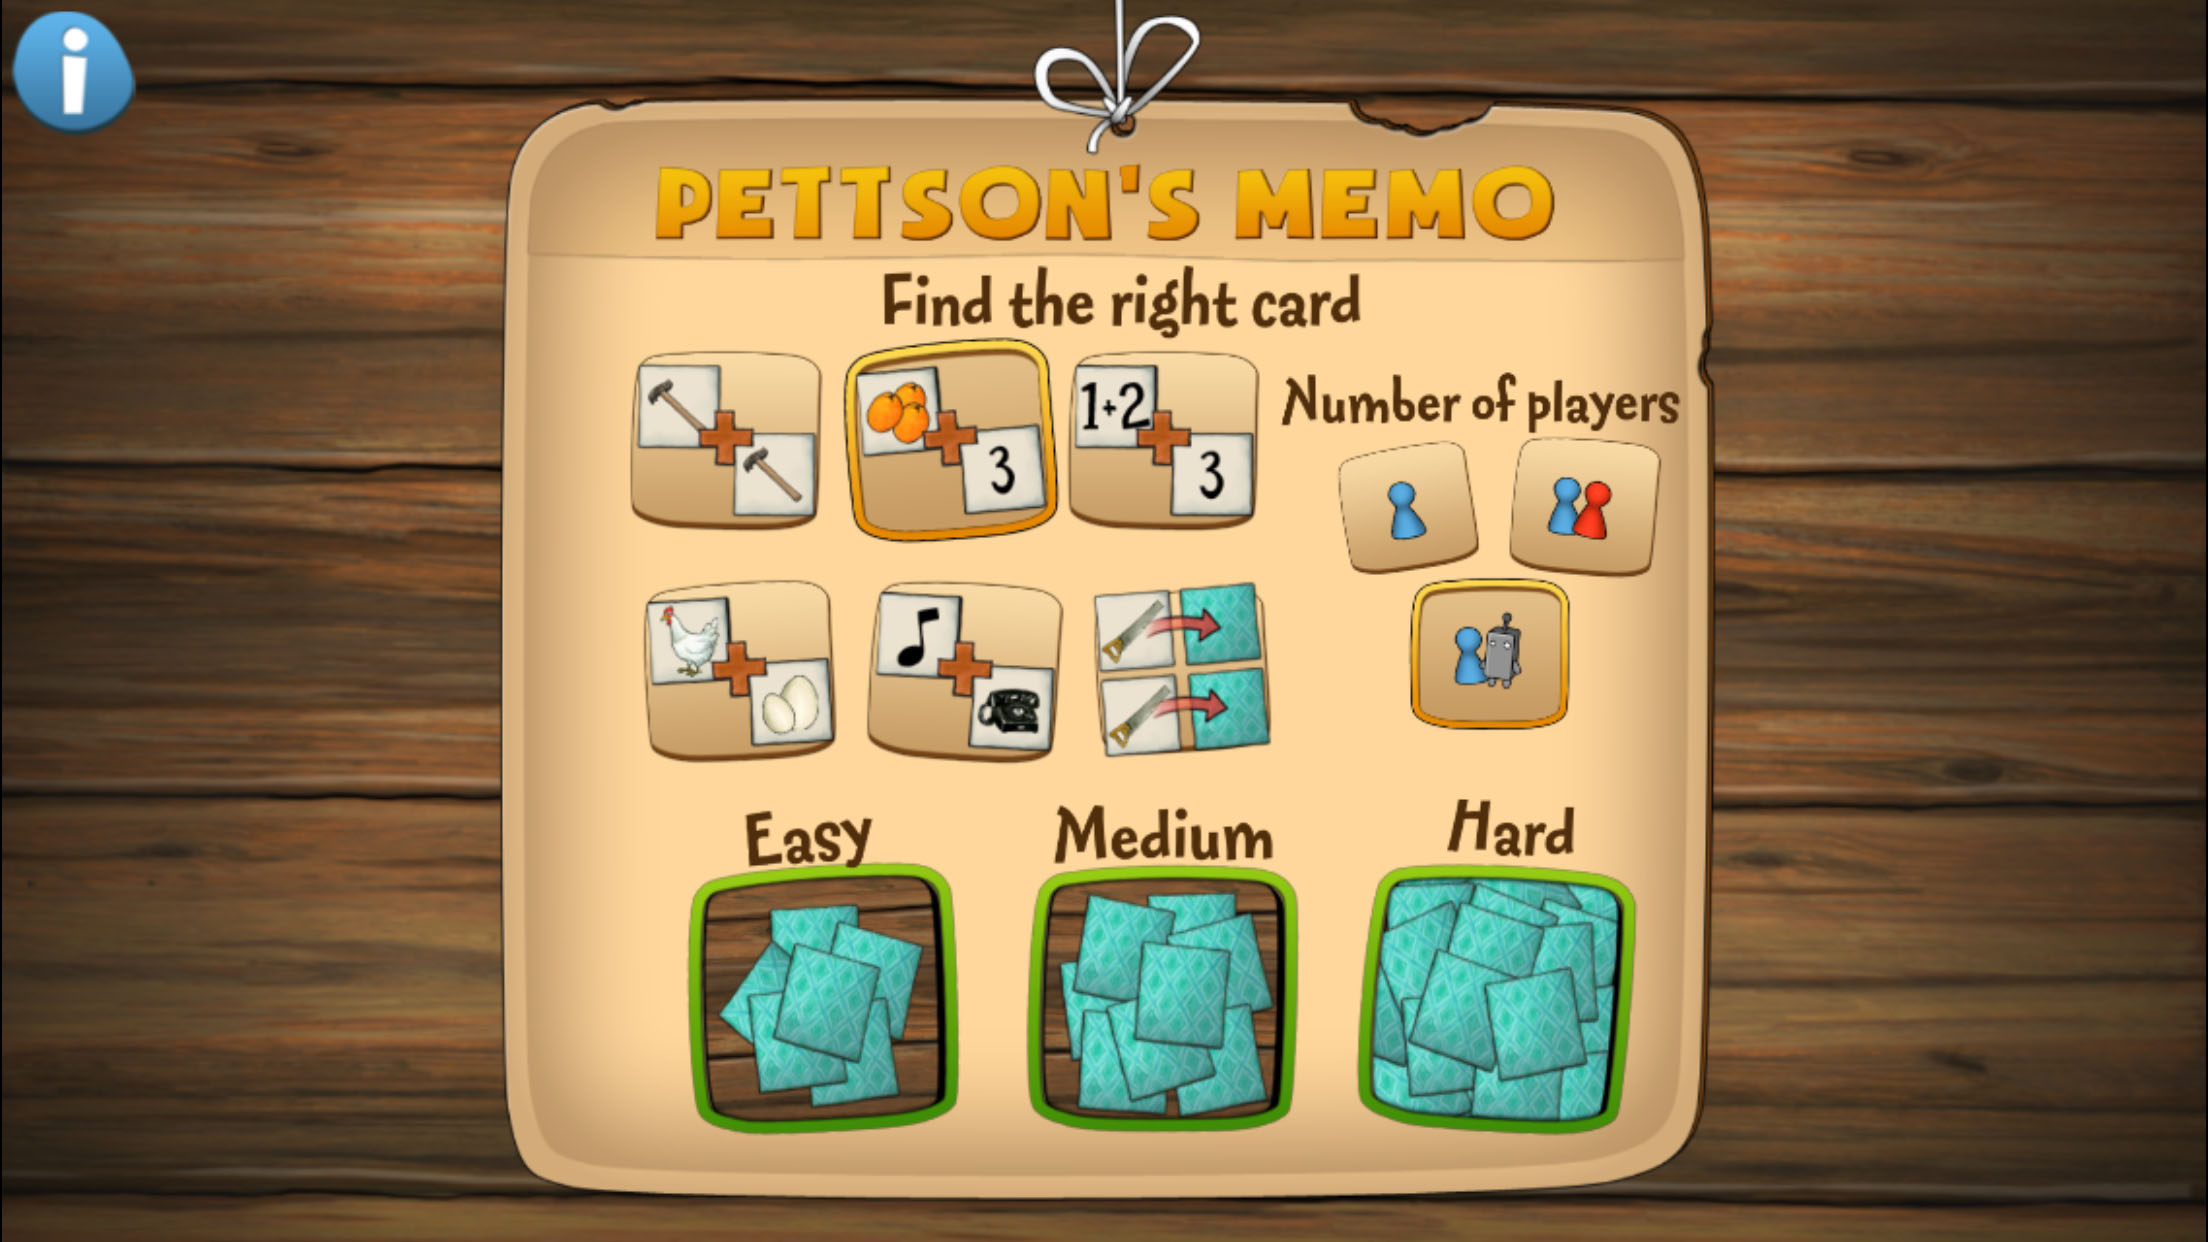 Img0308g logic memory and the exciting memory memory play by yourself with a friend or against pettson with three different difficulty levels the game suits solutioingenieria Choice Image